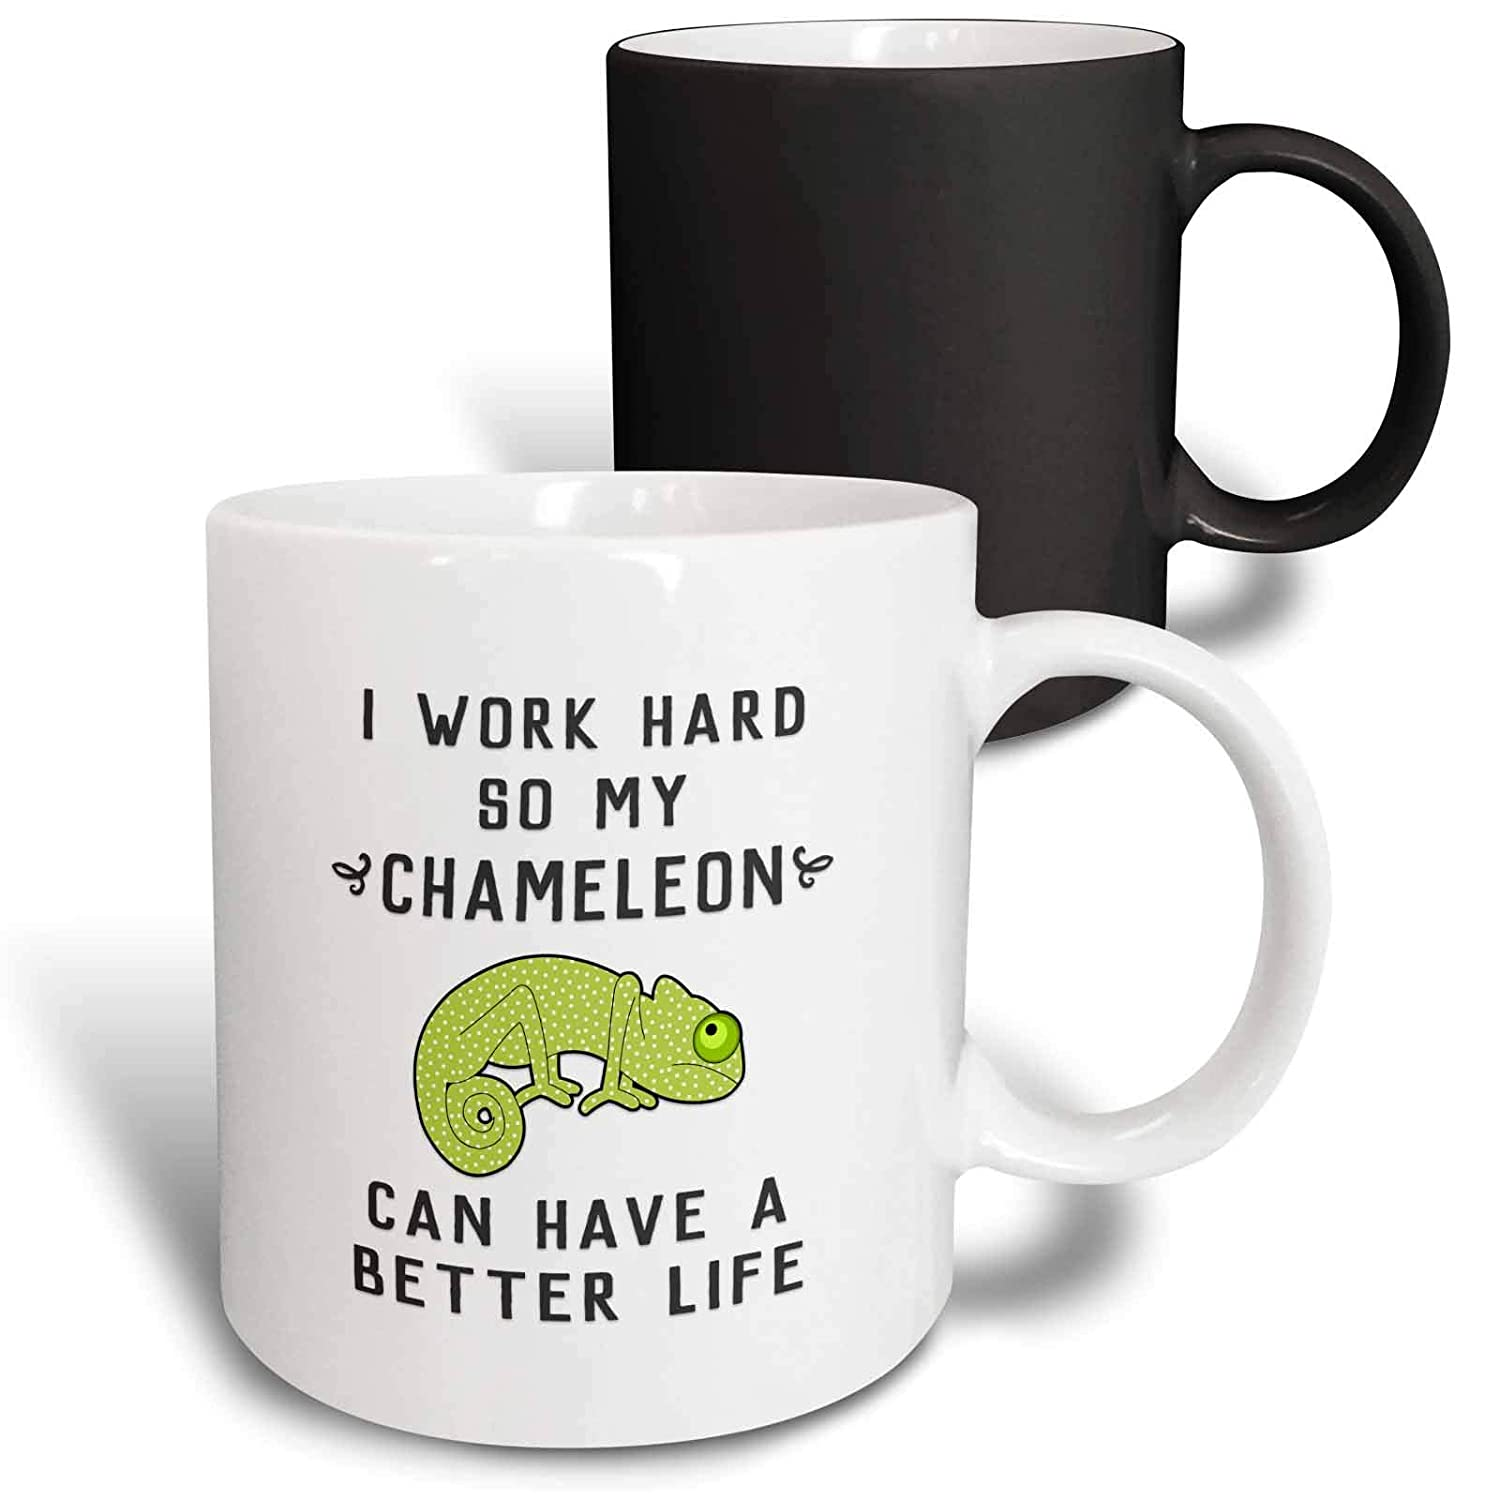 I Work Hard So My Chameleon Can Have A Better Life 3dRose Janna Salak Designs Text Art mug/_289657/_4 11oz Two-Tone Black Mug